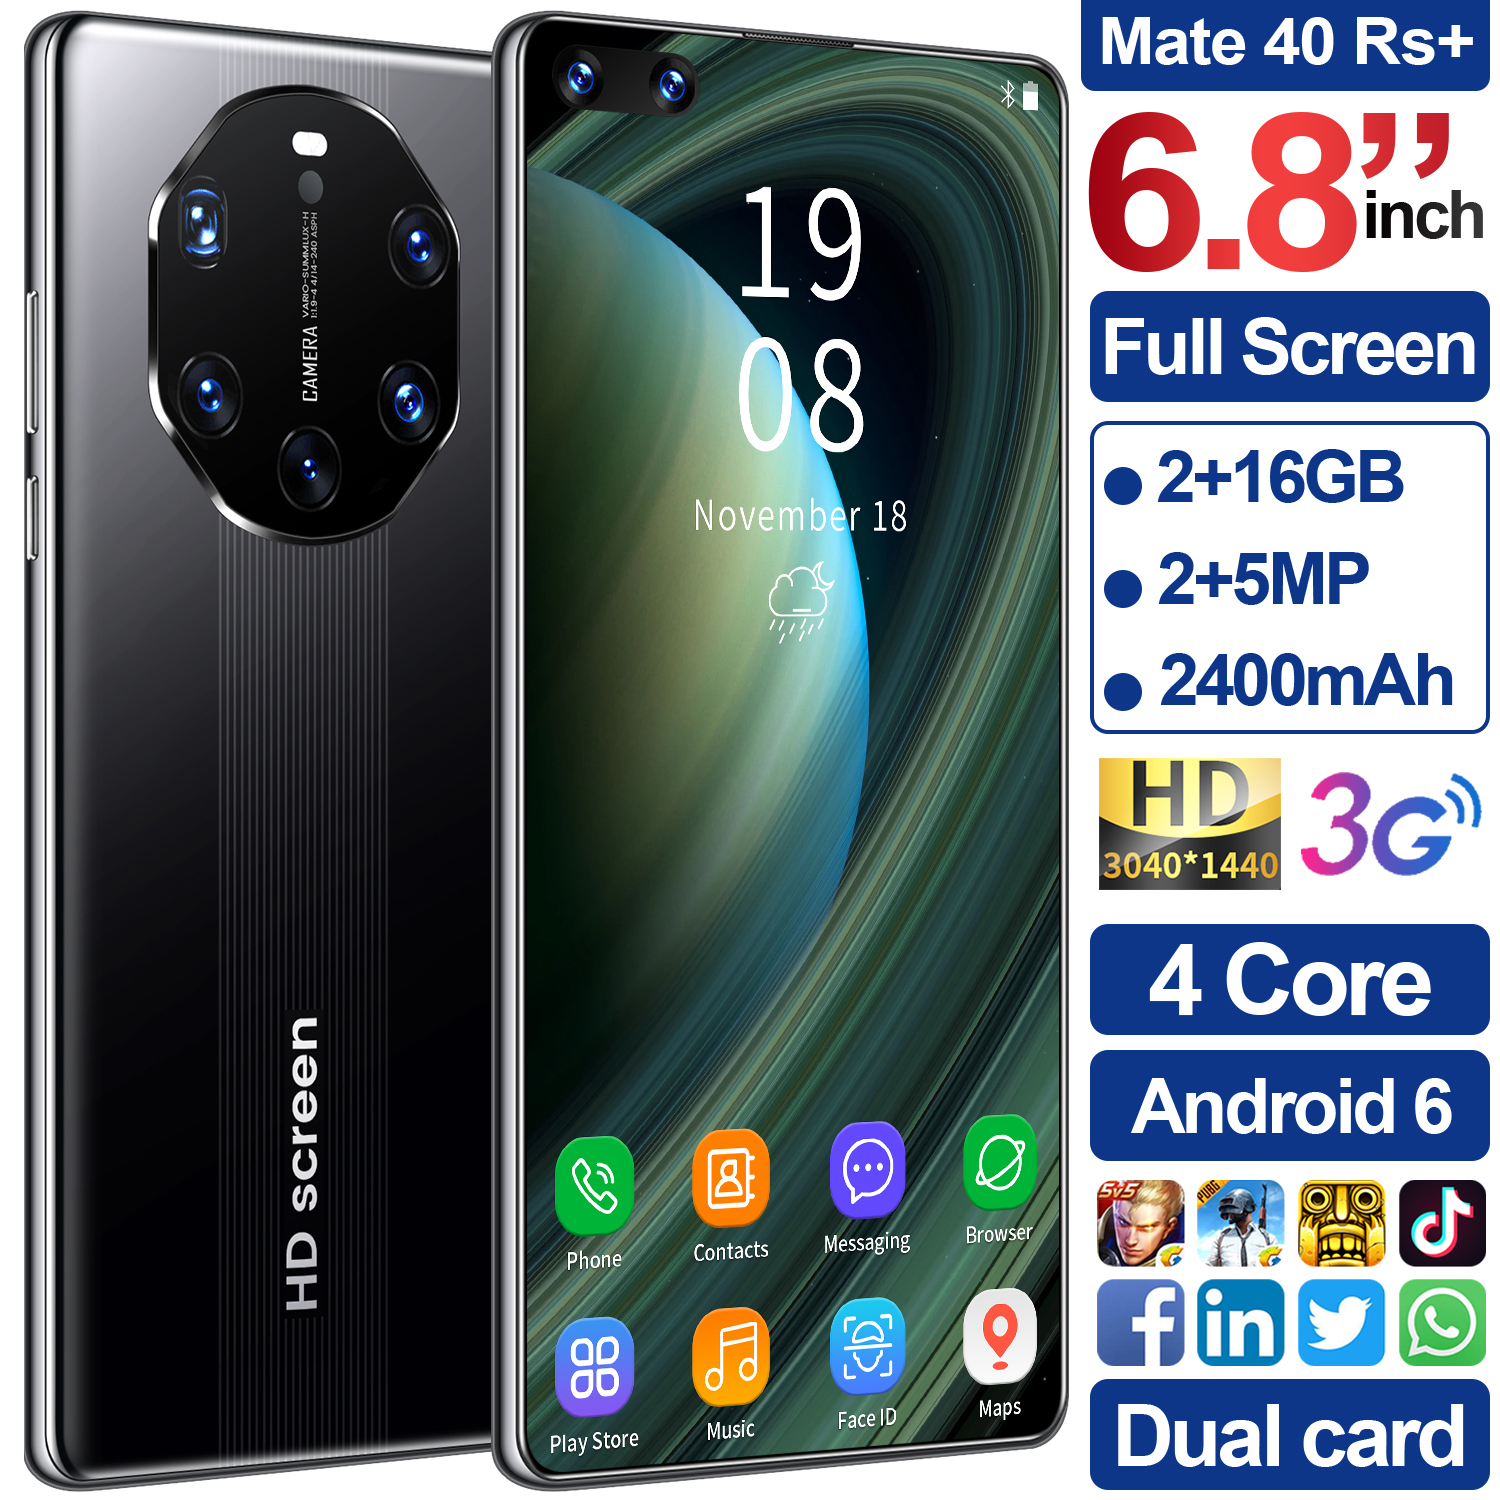 6.8-inch Mate40 RS+ High-definition Large-screen 3G Smartphone 2+16GB Black UK Plug